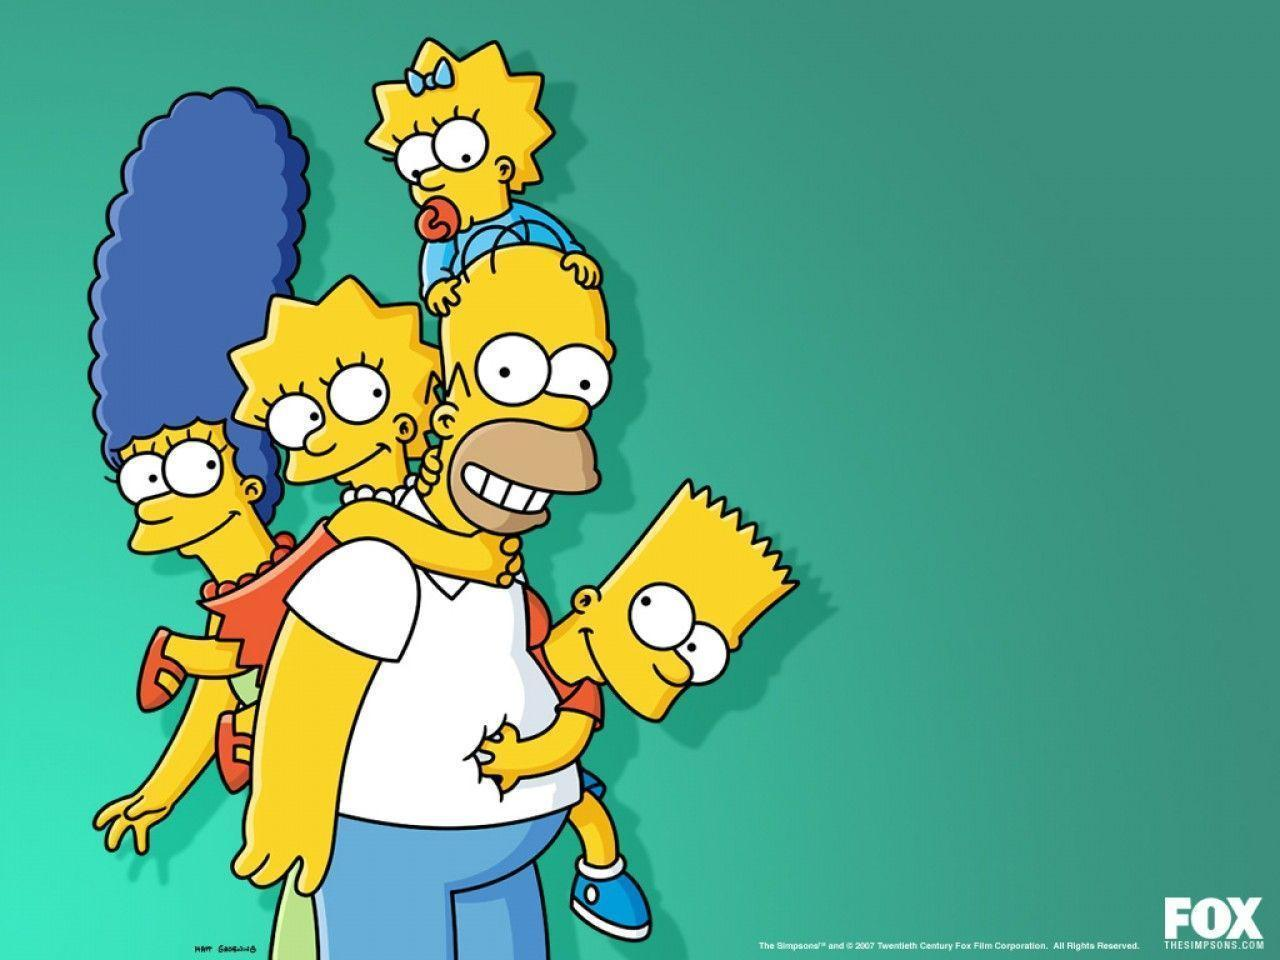 the simpsons Computer Wallpapers, Desktop Backgrounds 1280x960 Id